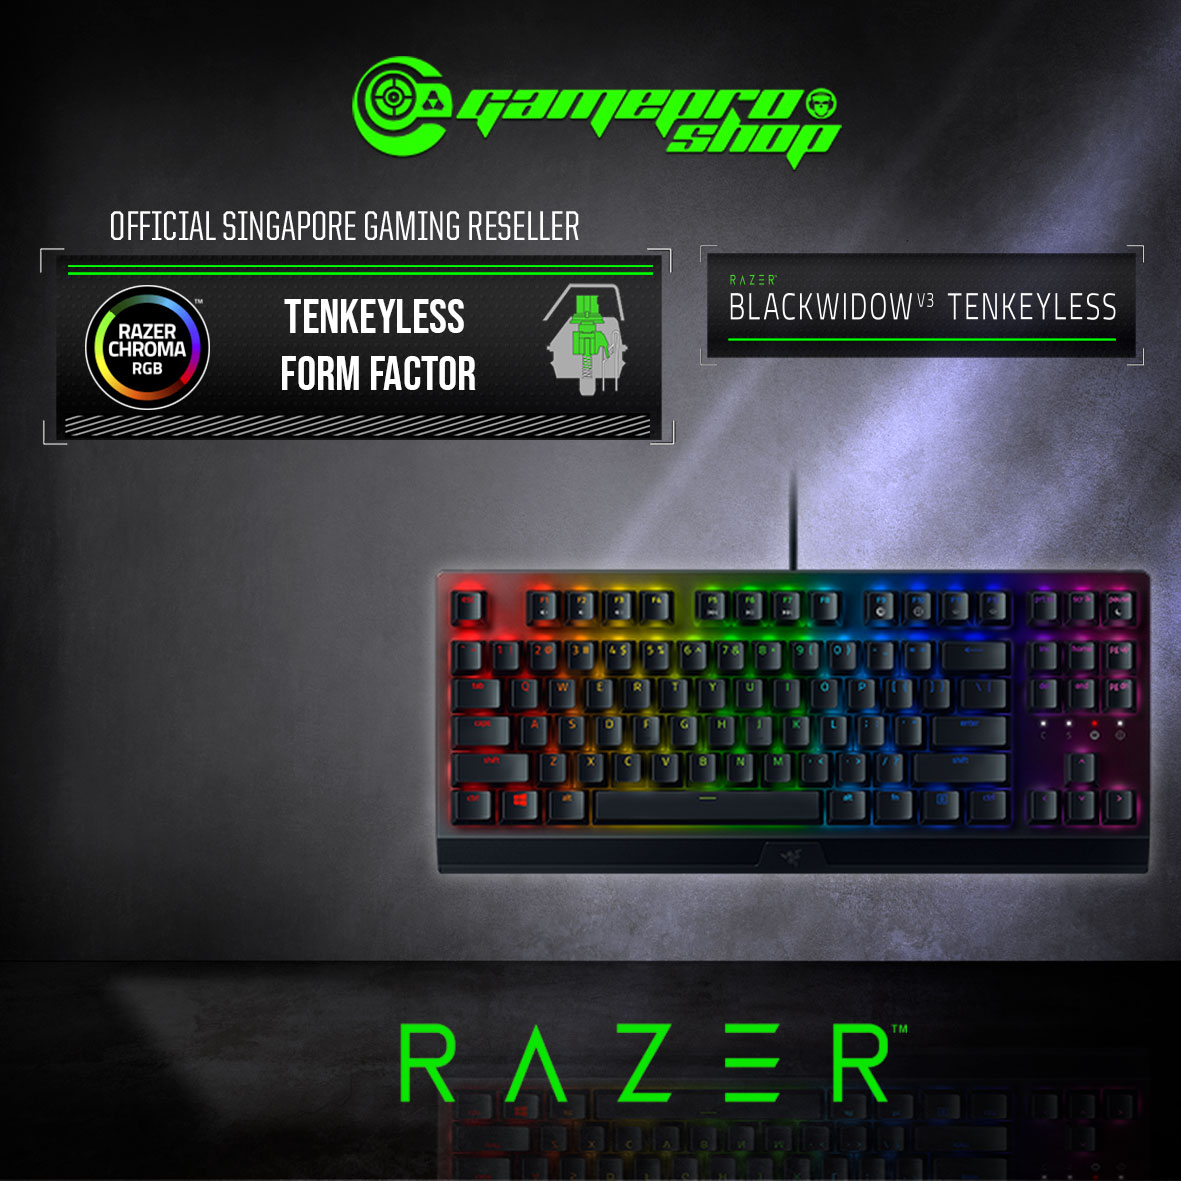 Razer Blackwidow V3 Tkl Mech Gaming Keyboard Rz03 03490100 R3m1 2y Gamepro Shop